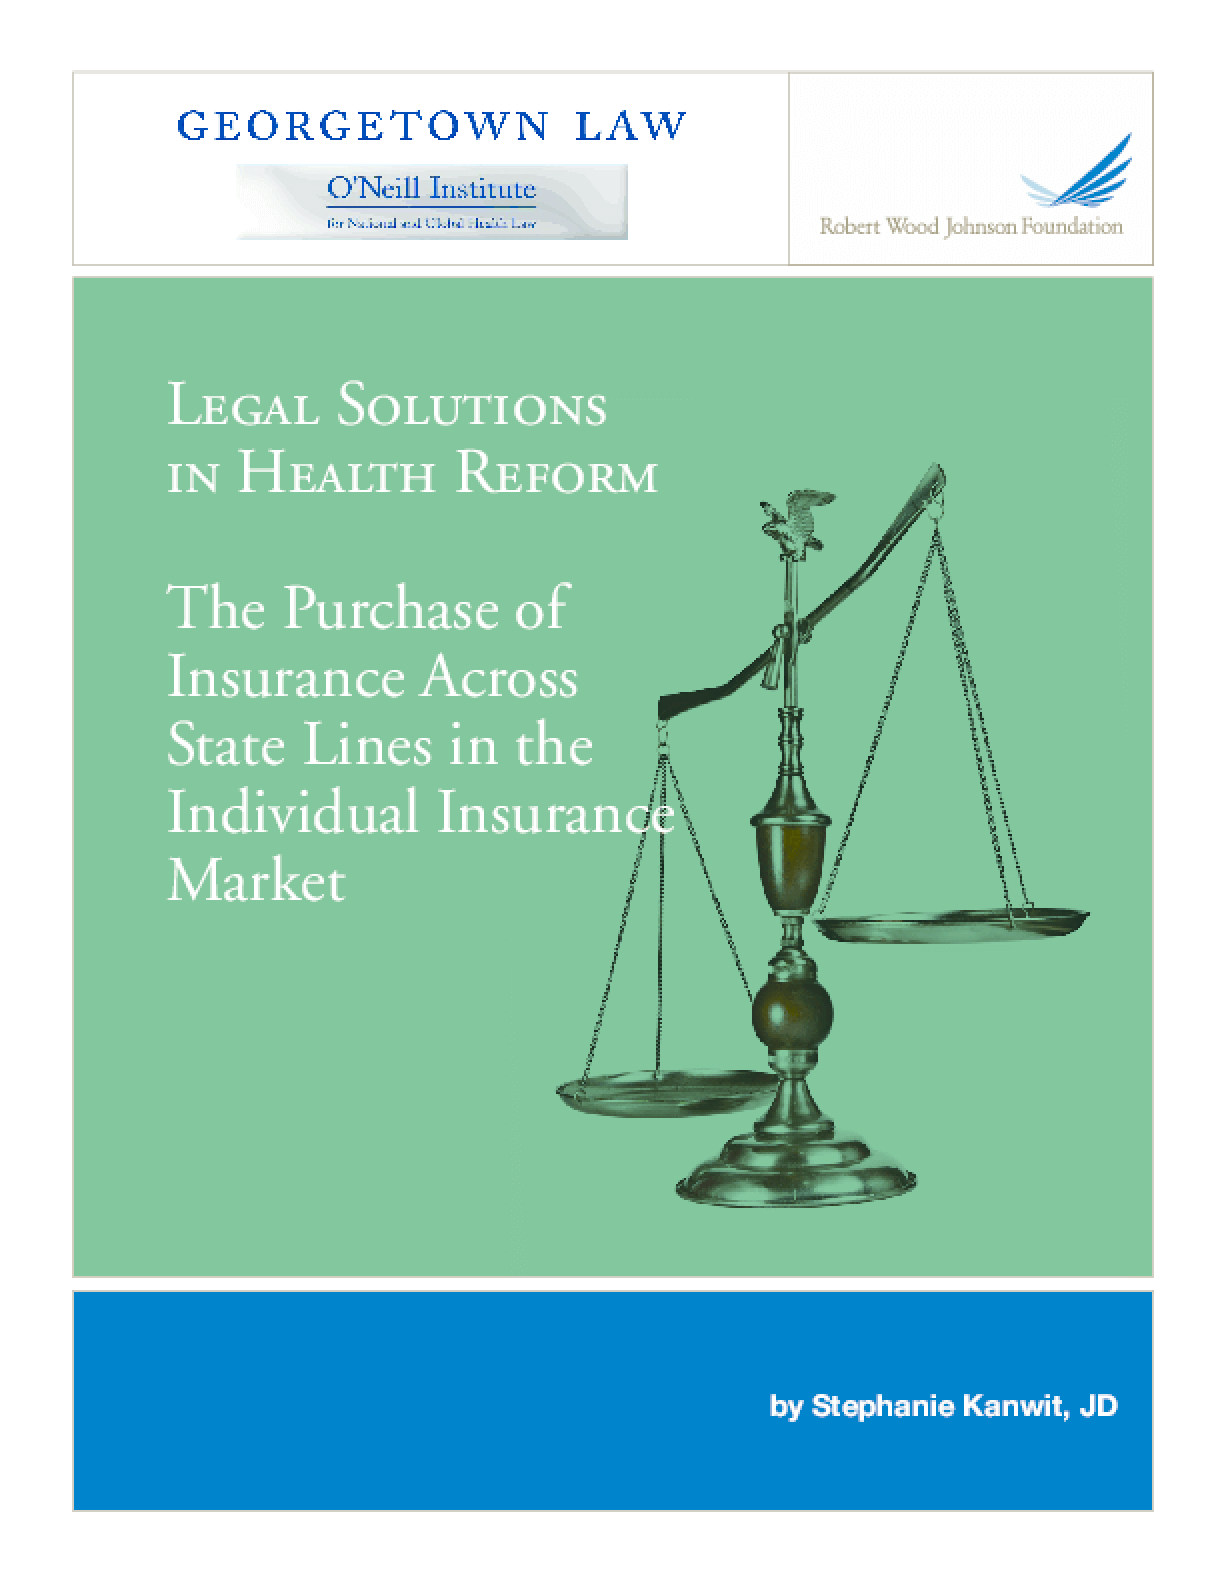 Legal Solutions in Health Reform: The Purchase of Insurance Across State Lines in the Individual Insurance Market